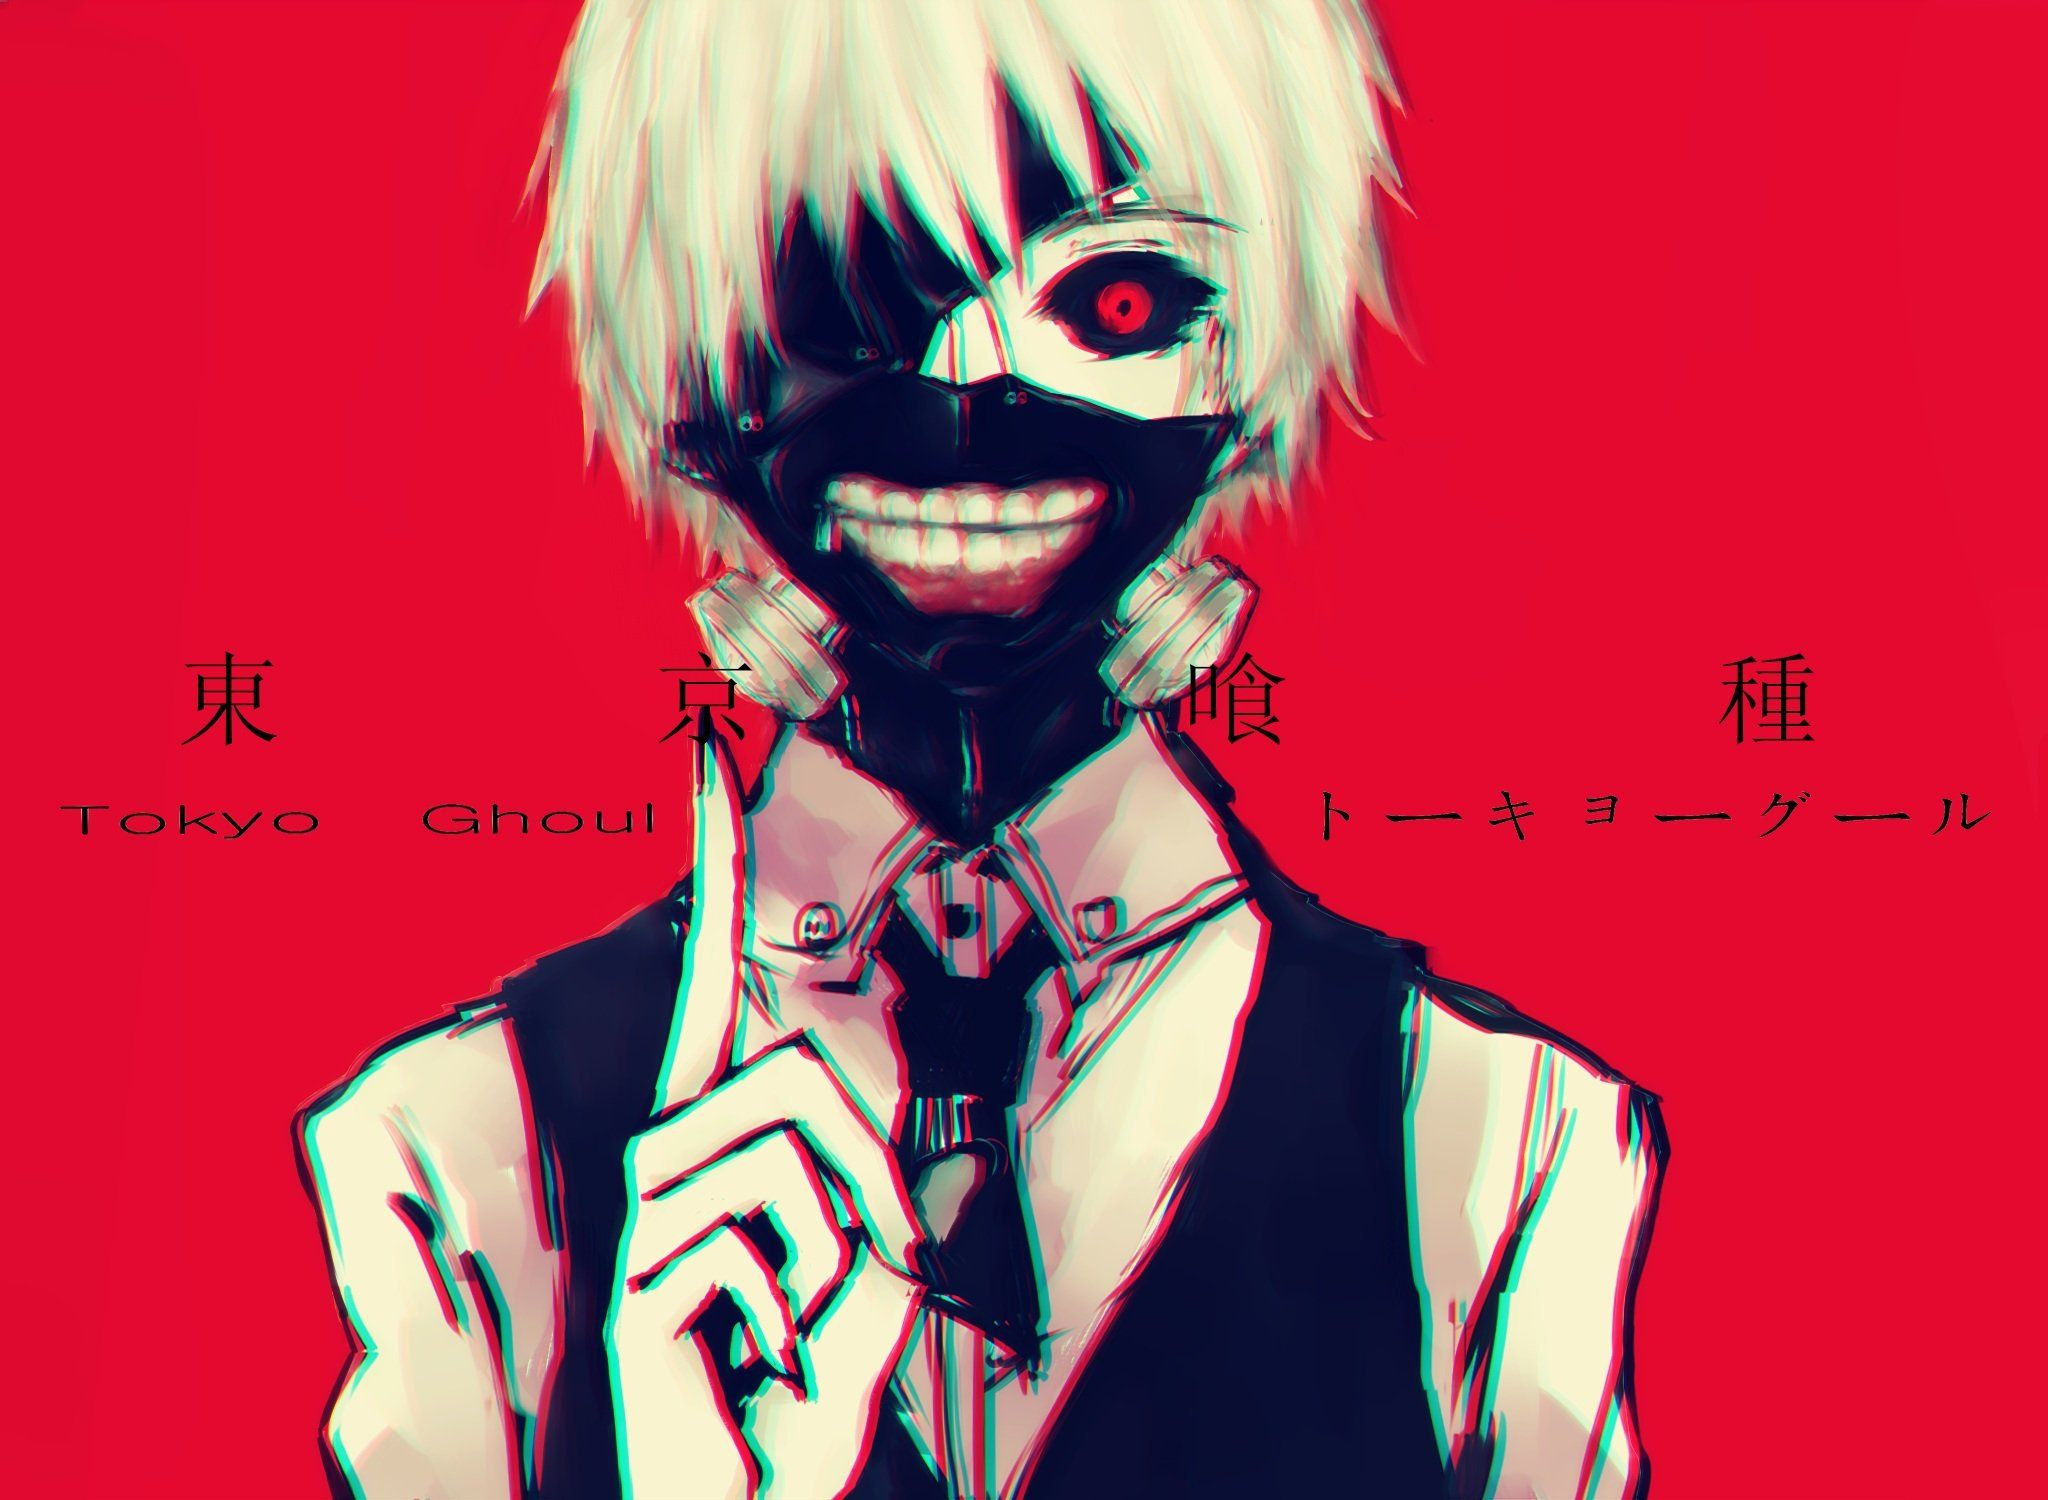 Tokyo Ghoul Best Wallpaper Hd For Desktop And Android Animasi